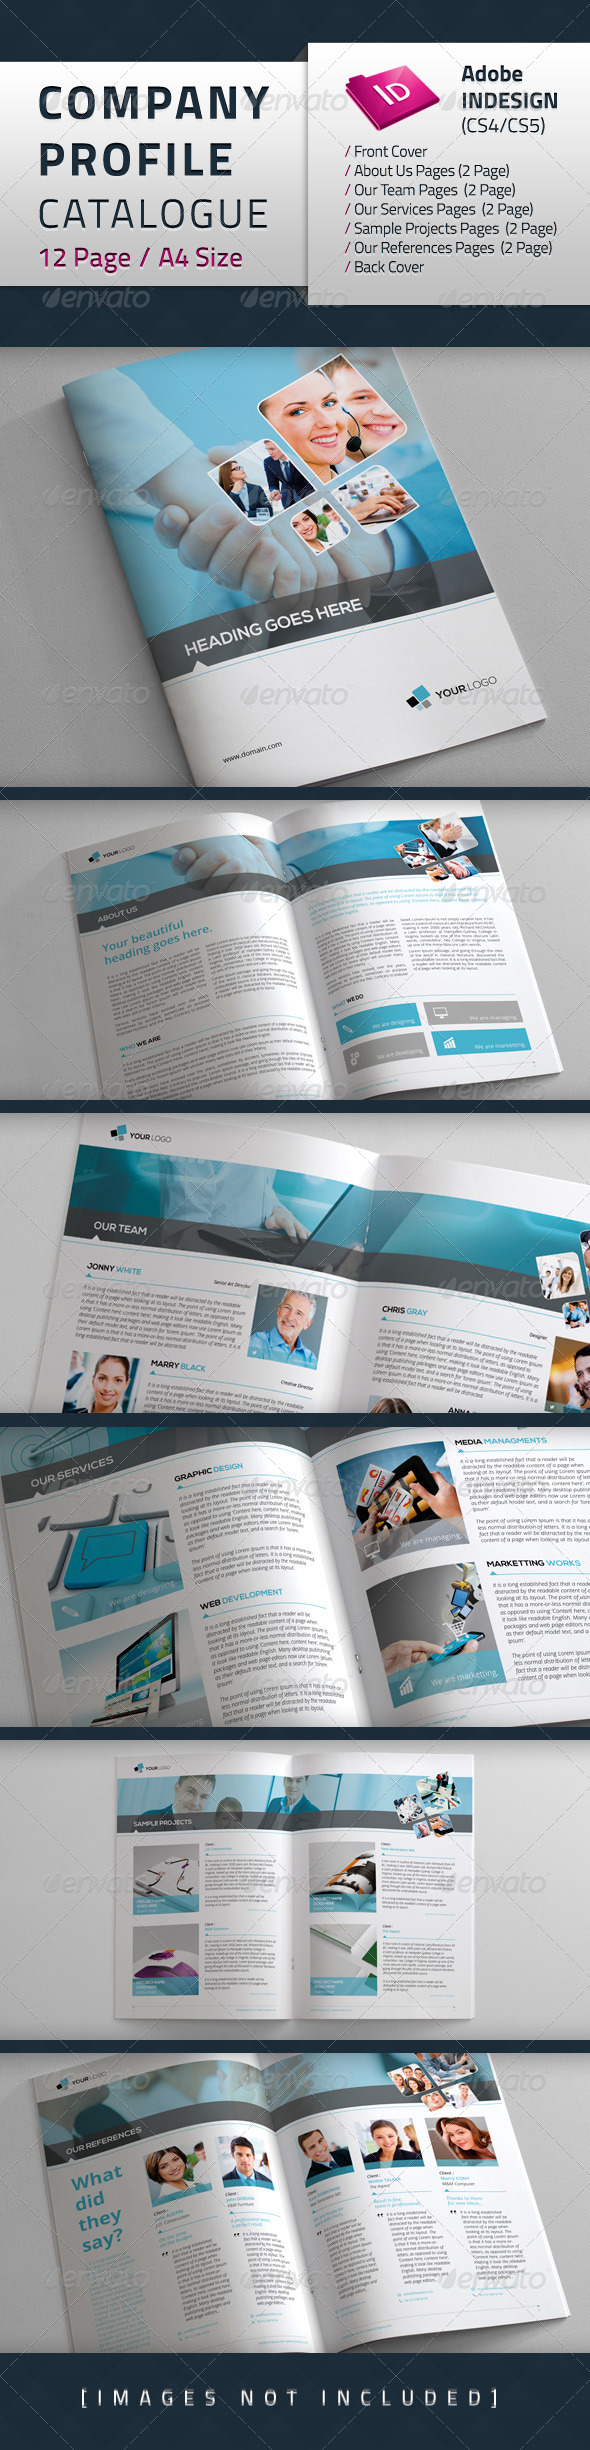 Company Profile Catalogue - Brochures Print Templates